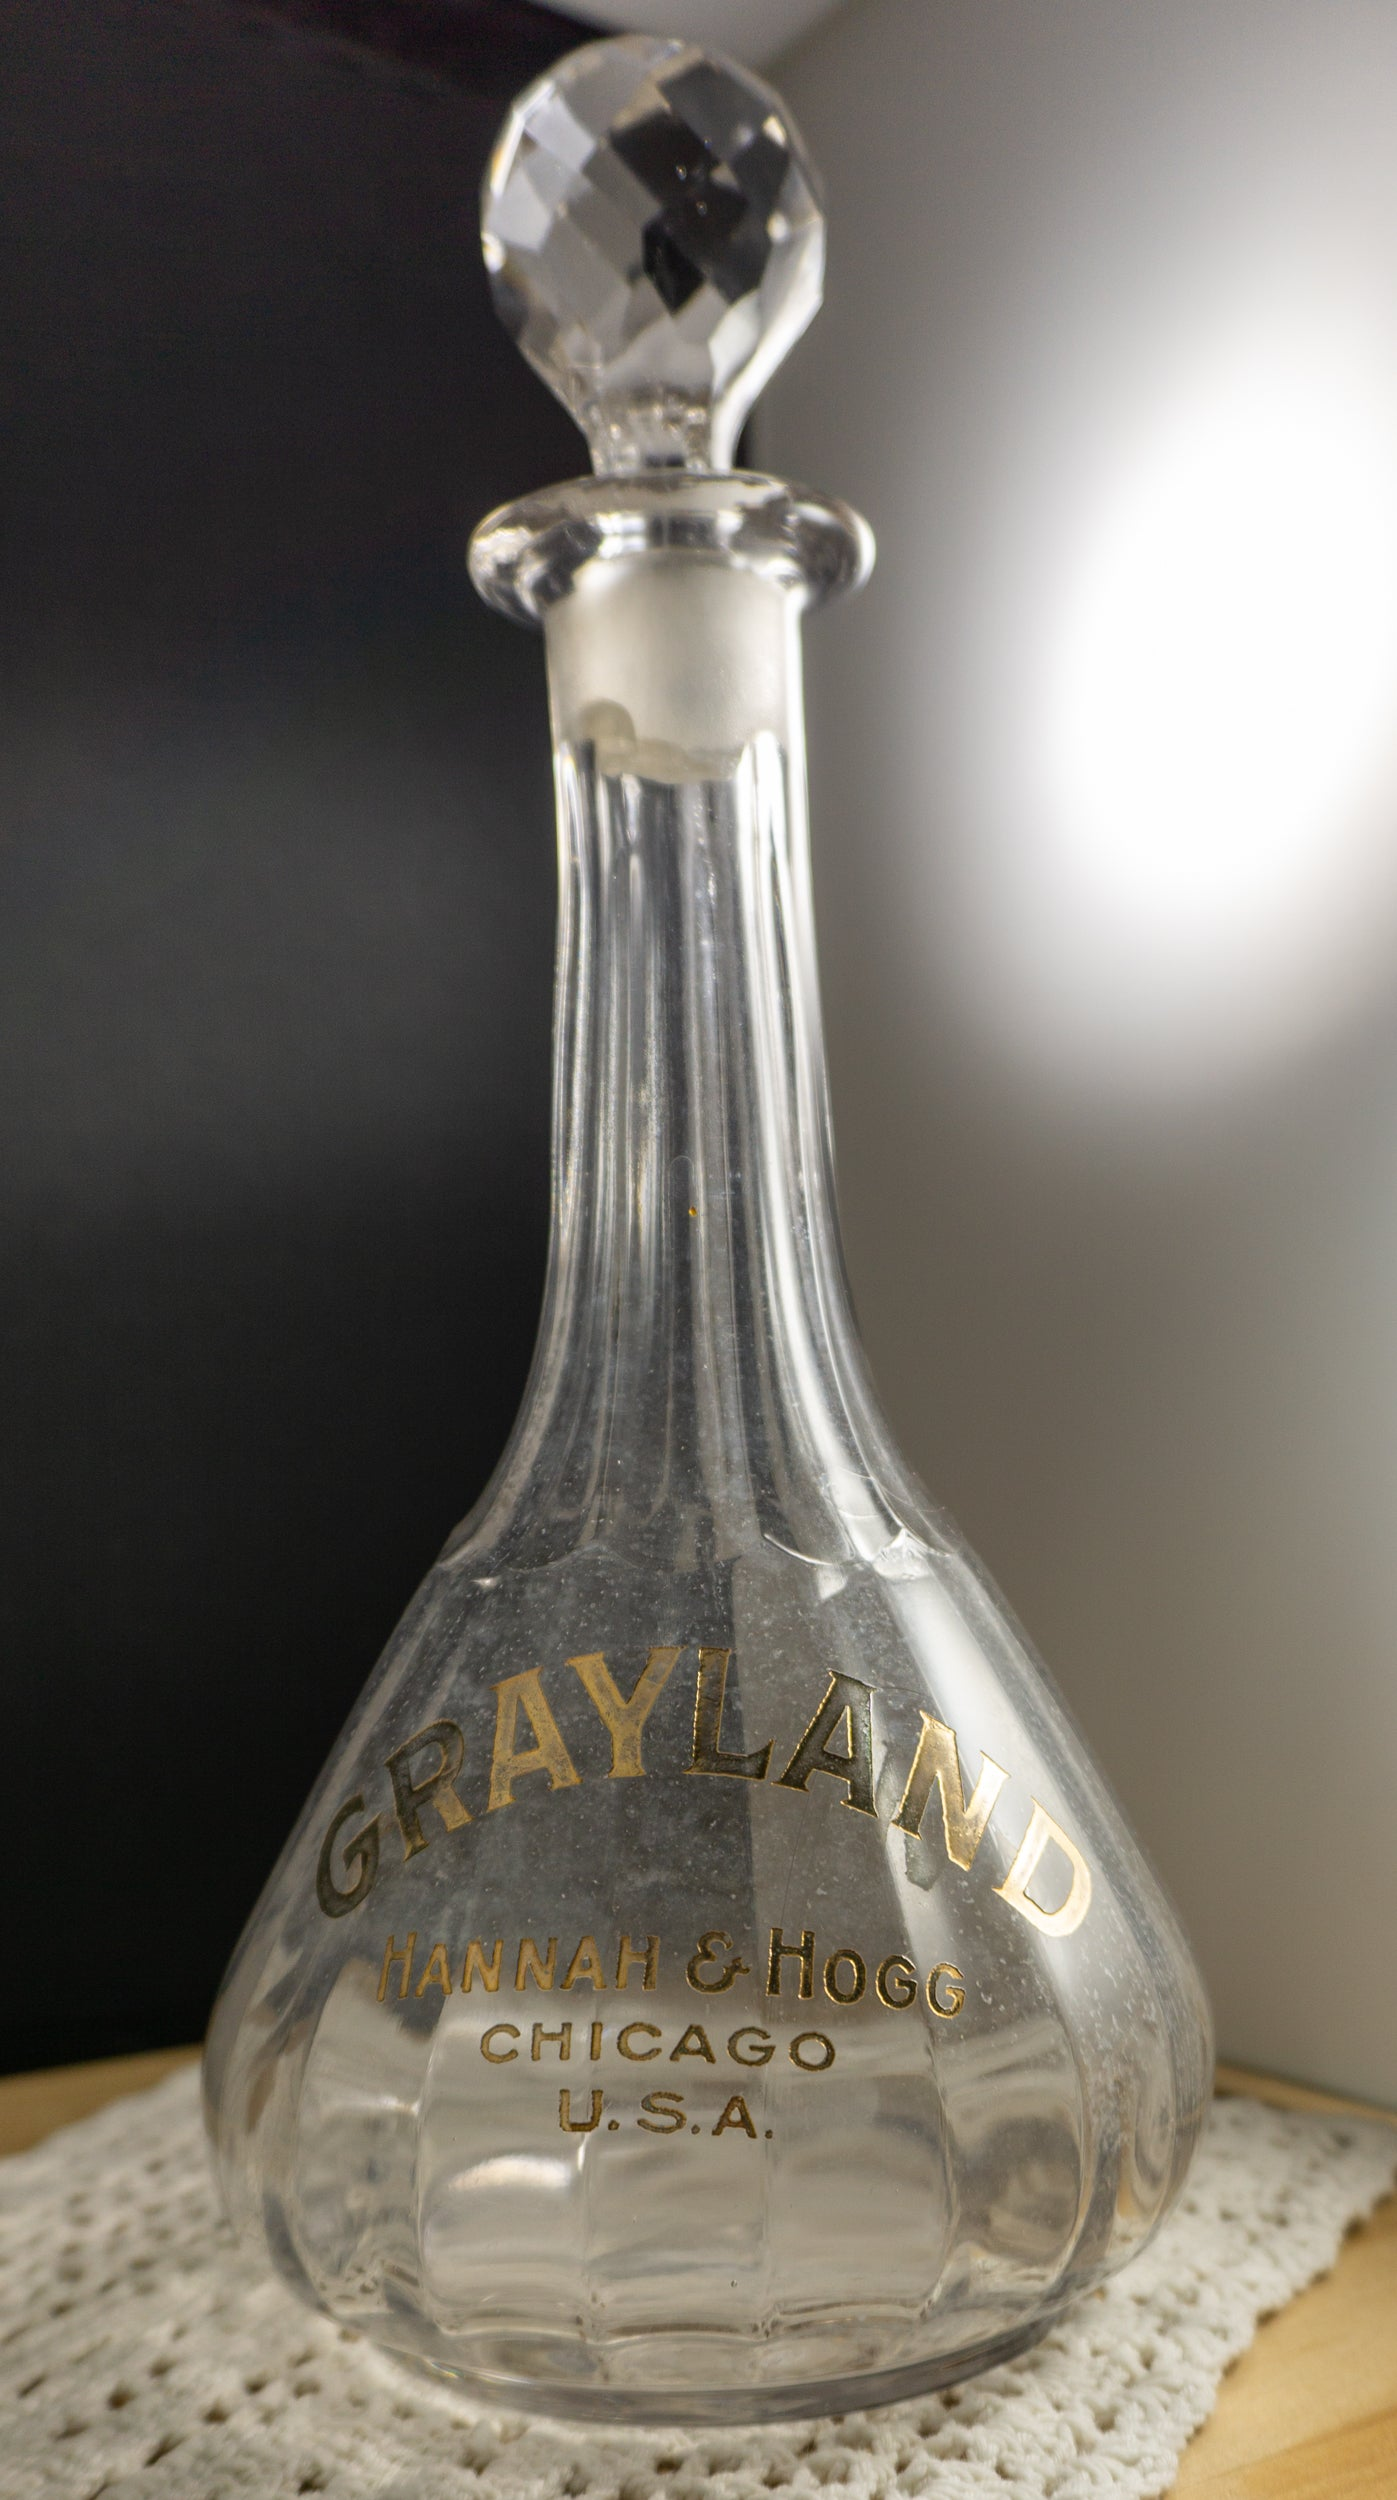 Antique Glass Grayland Hannah & Hogg Liquor Bottle Decanter with Stopper